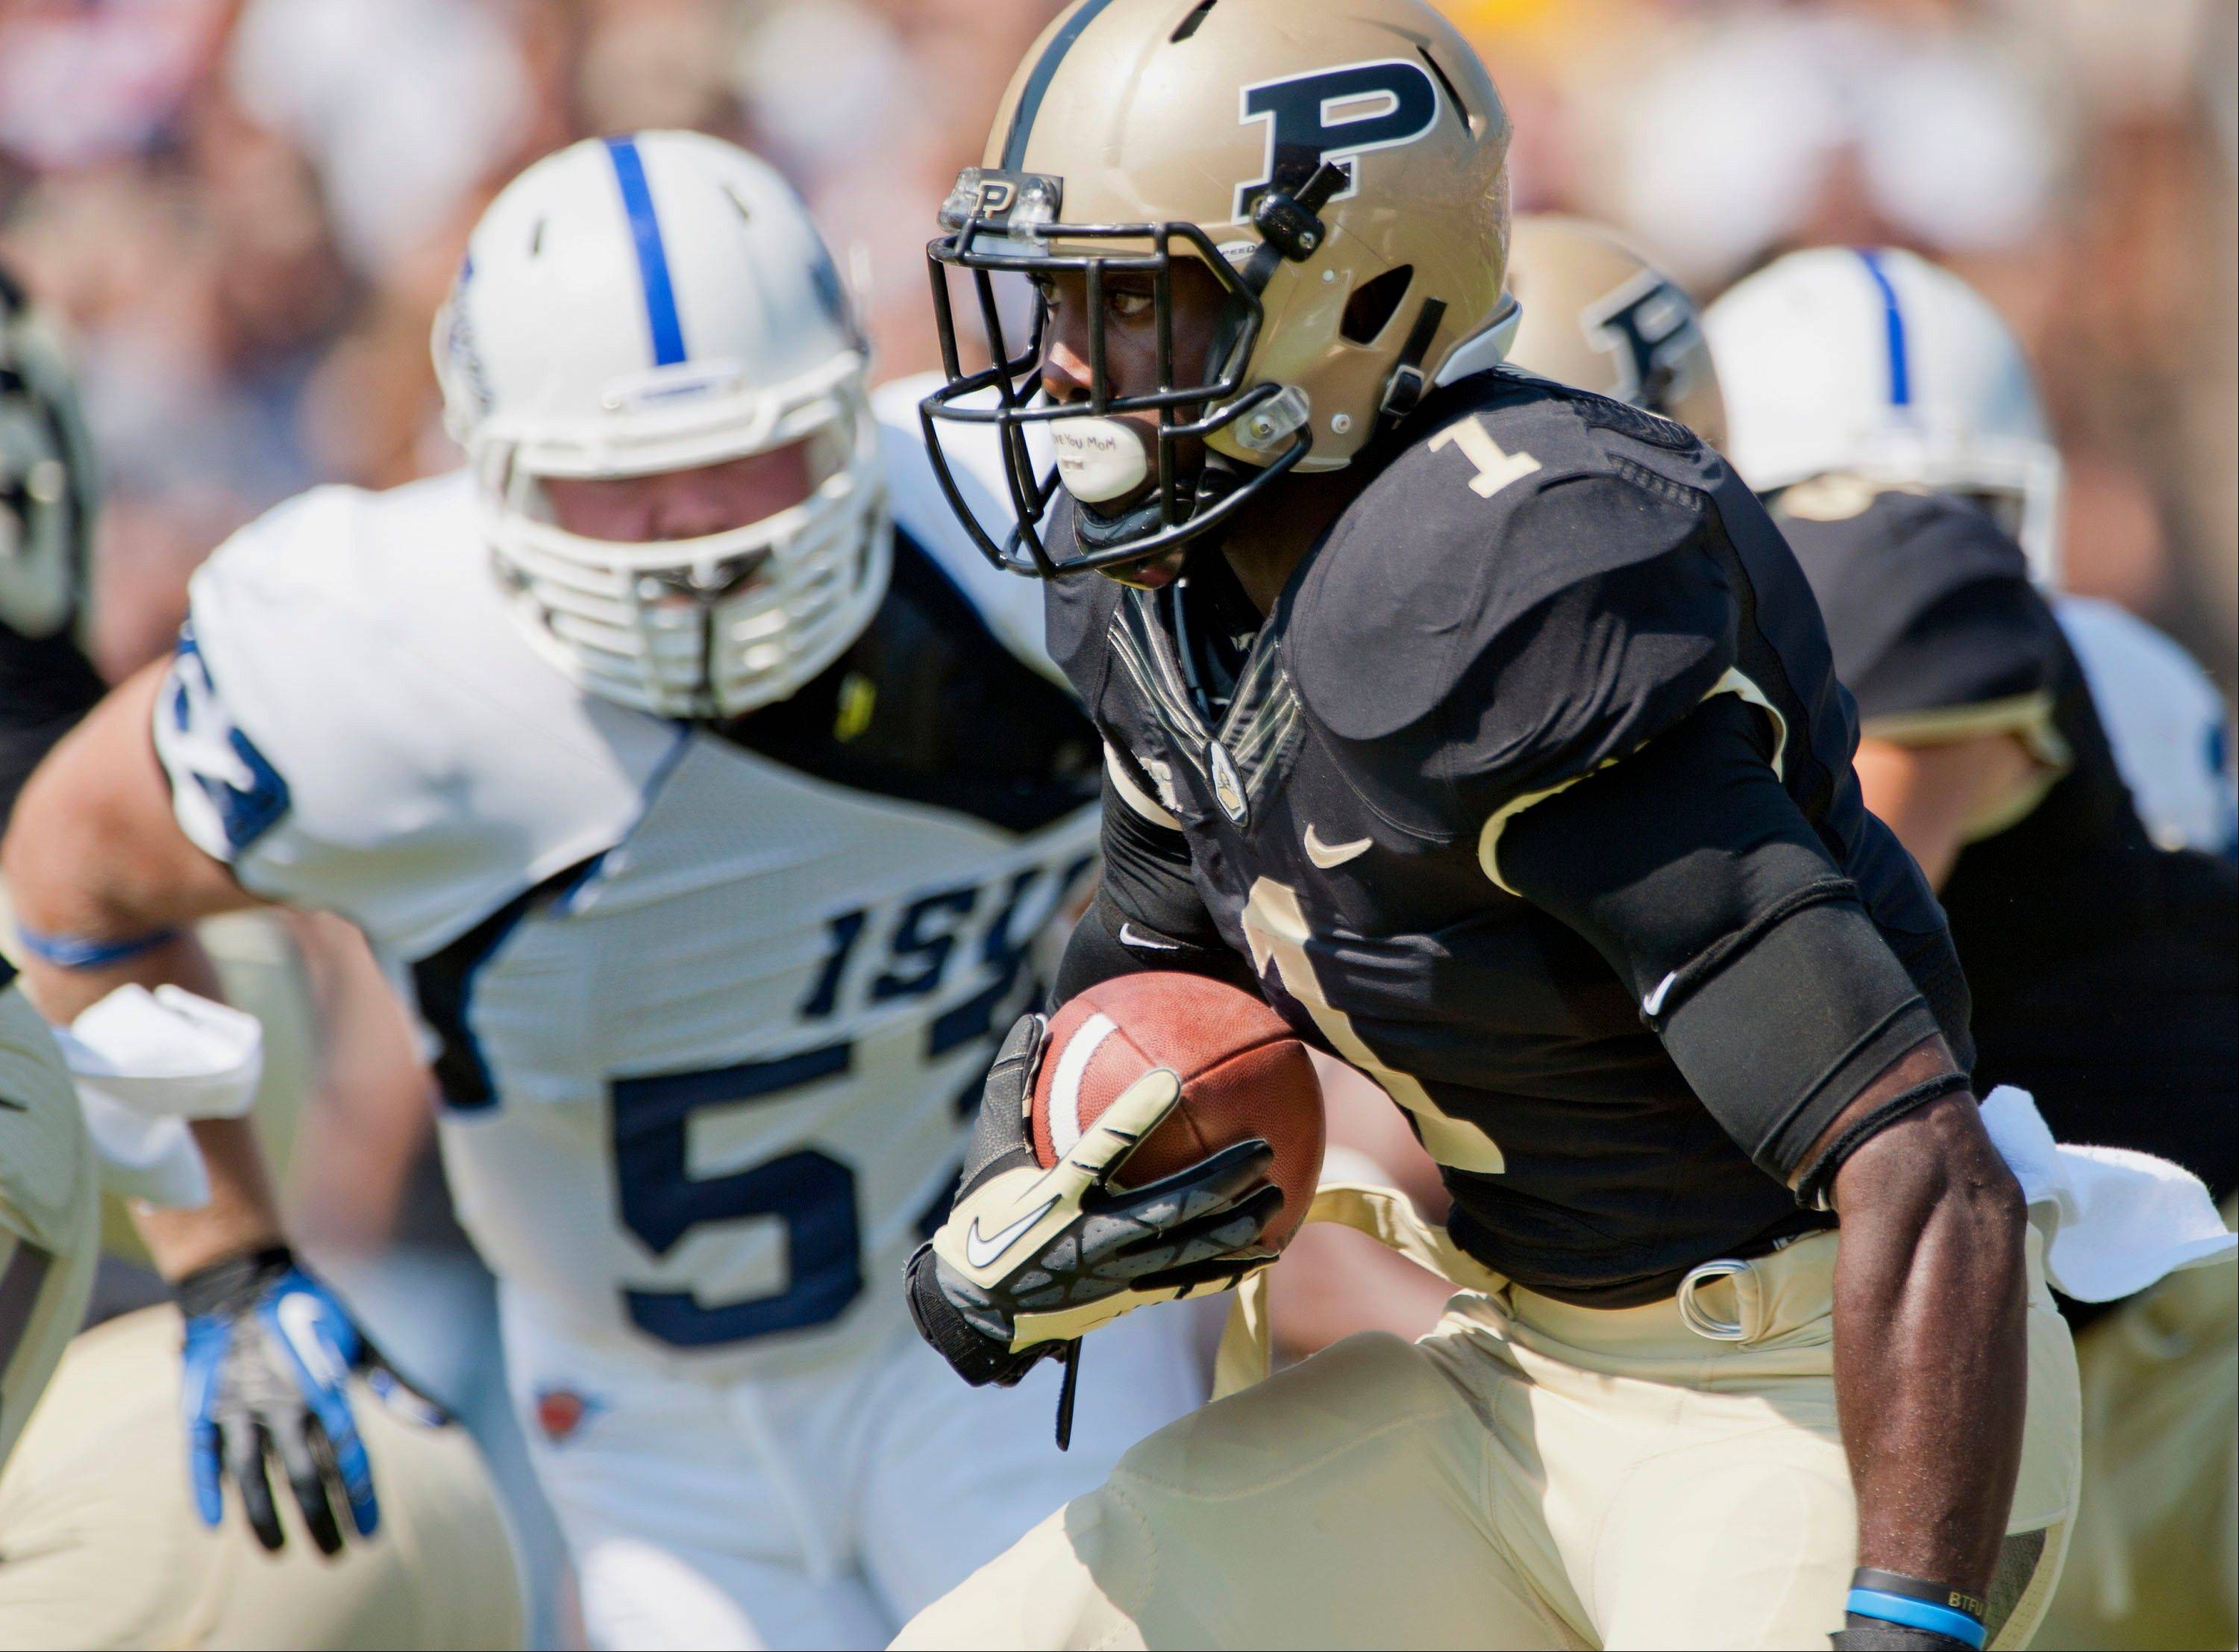 Purdue�s Akeem Hunt carries the ball against Indiana State during the first half of last Saturday�s win in West Lafayette, Ind. The Boilermakers have scored only two offensive touchdowns so far this season.